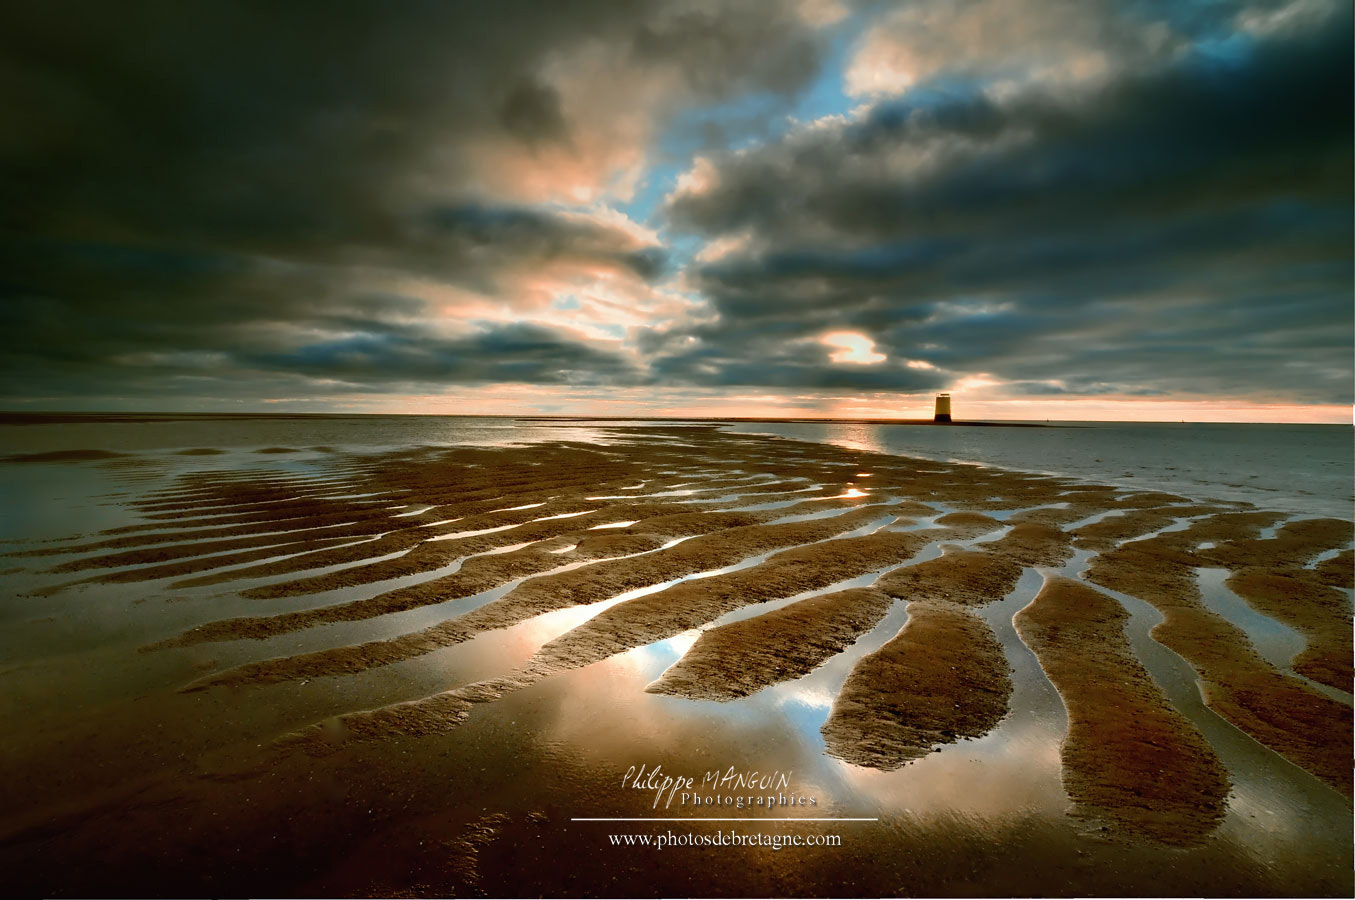 Photograph SEA TREASURES by Philippe MANGUIN on 500px